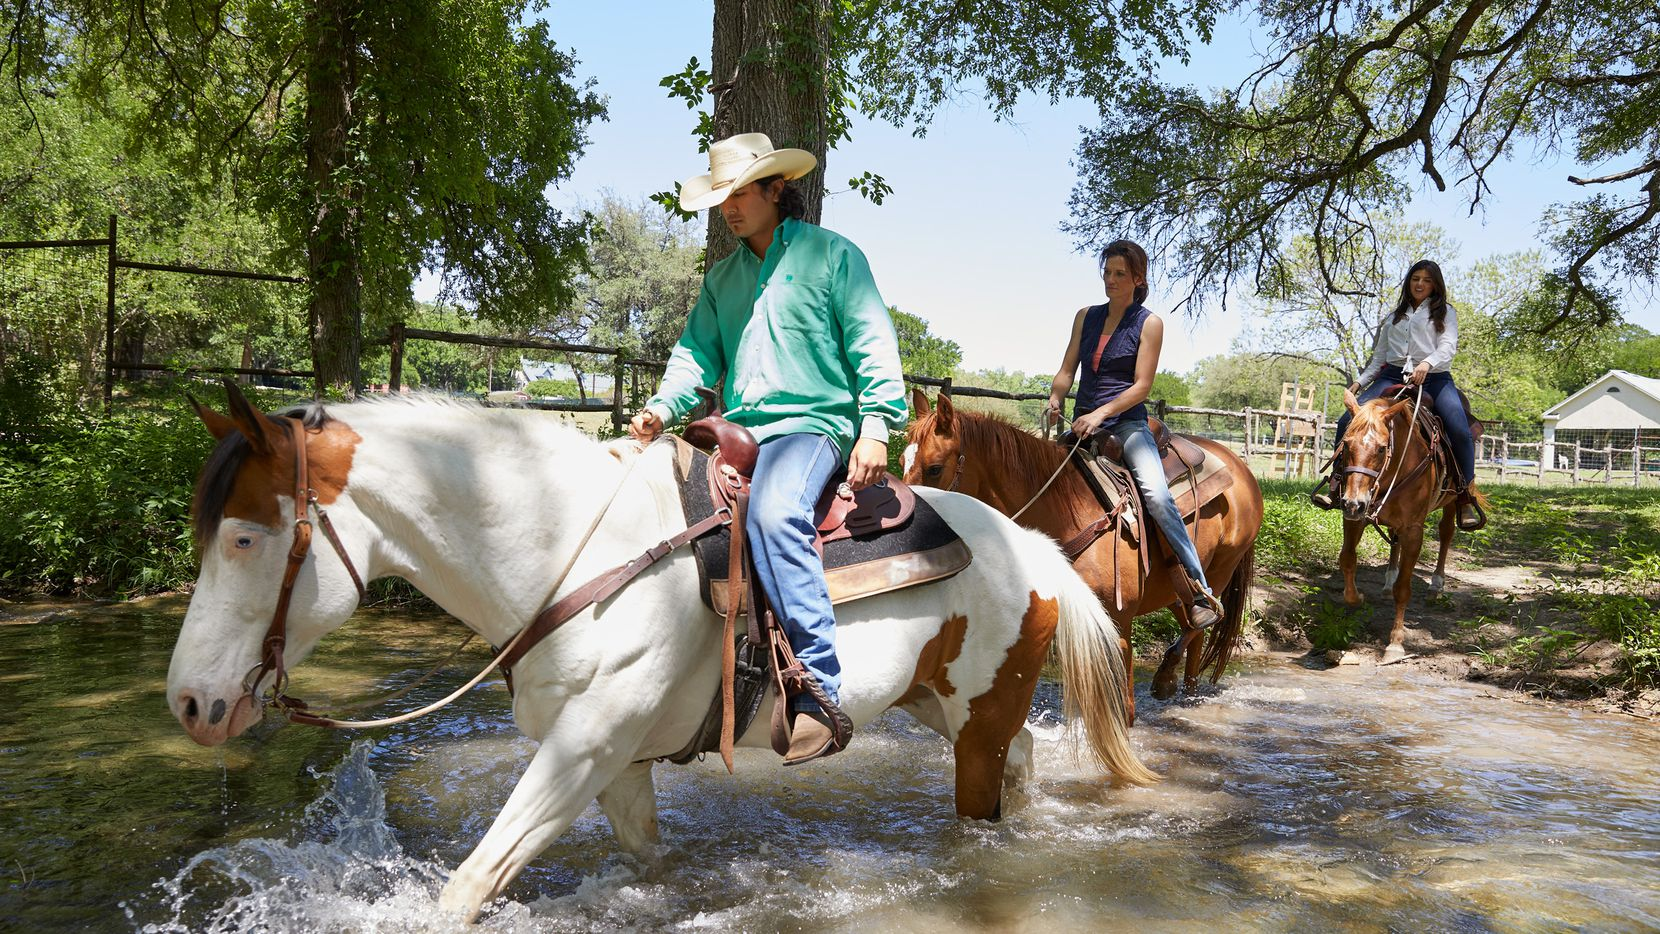 Therapeutic trail riding is one of the experiences offered at Miraval Austin.